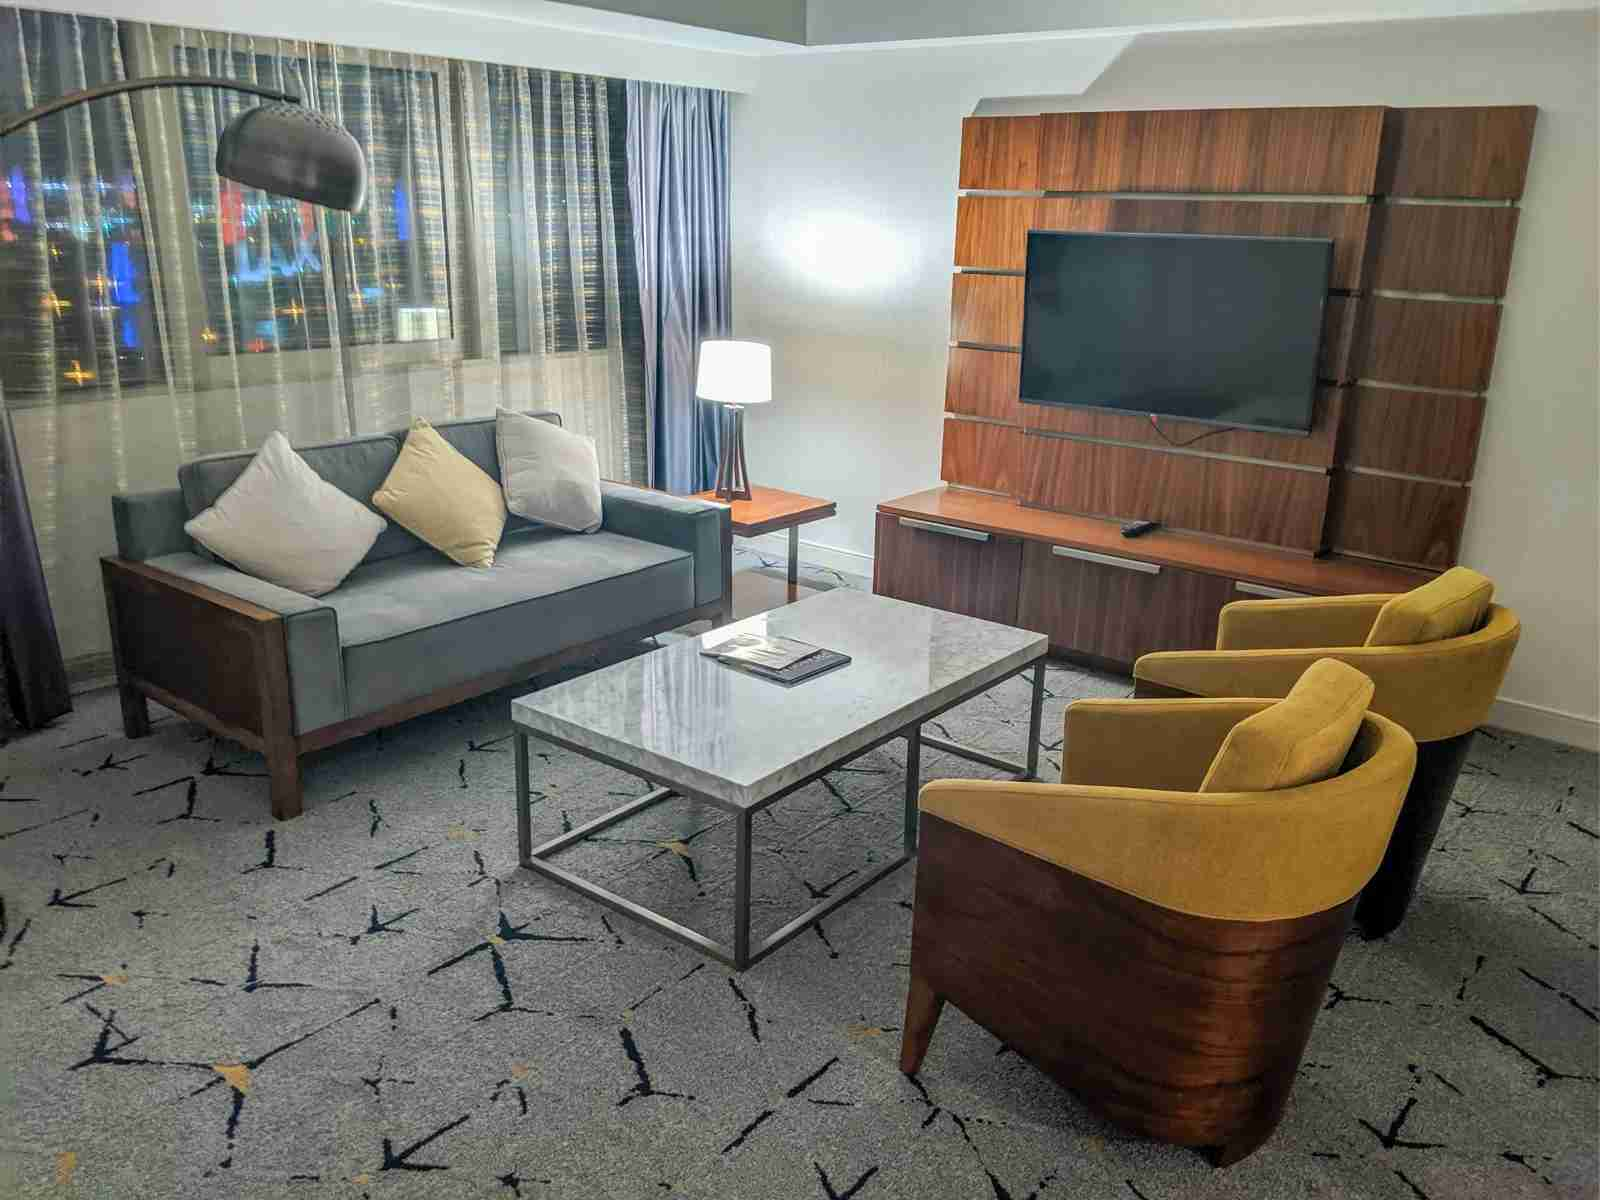 The sitting area of a suite that Katie and I received in May 2019. (Photo by JT Genter/The Points Guy)